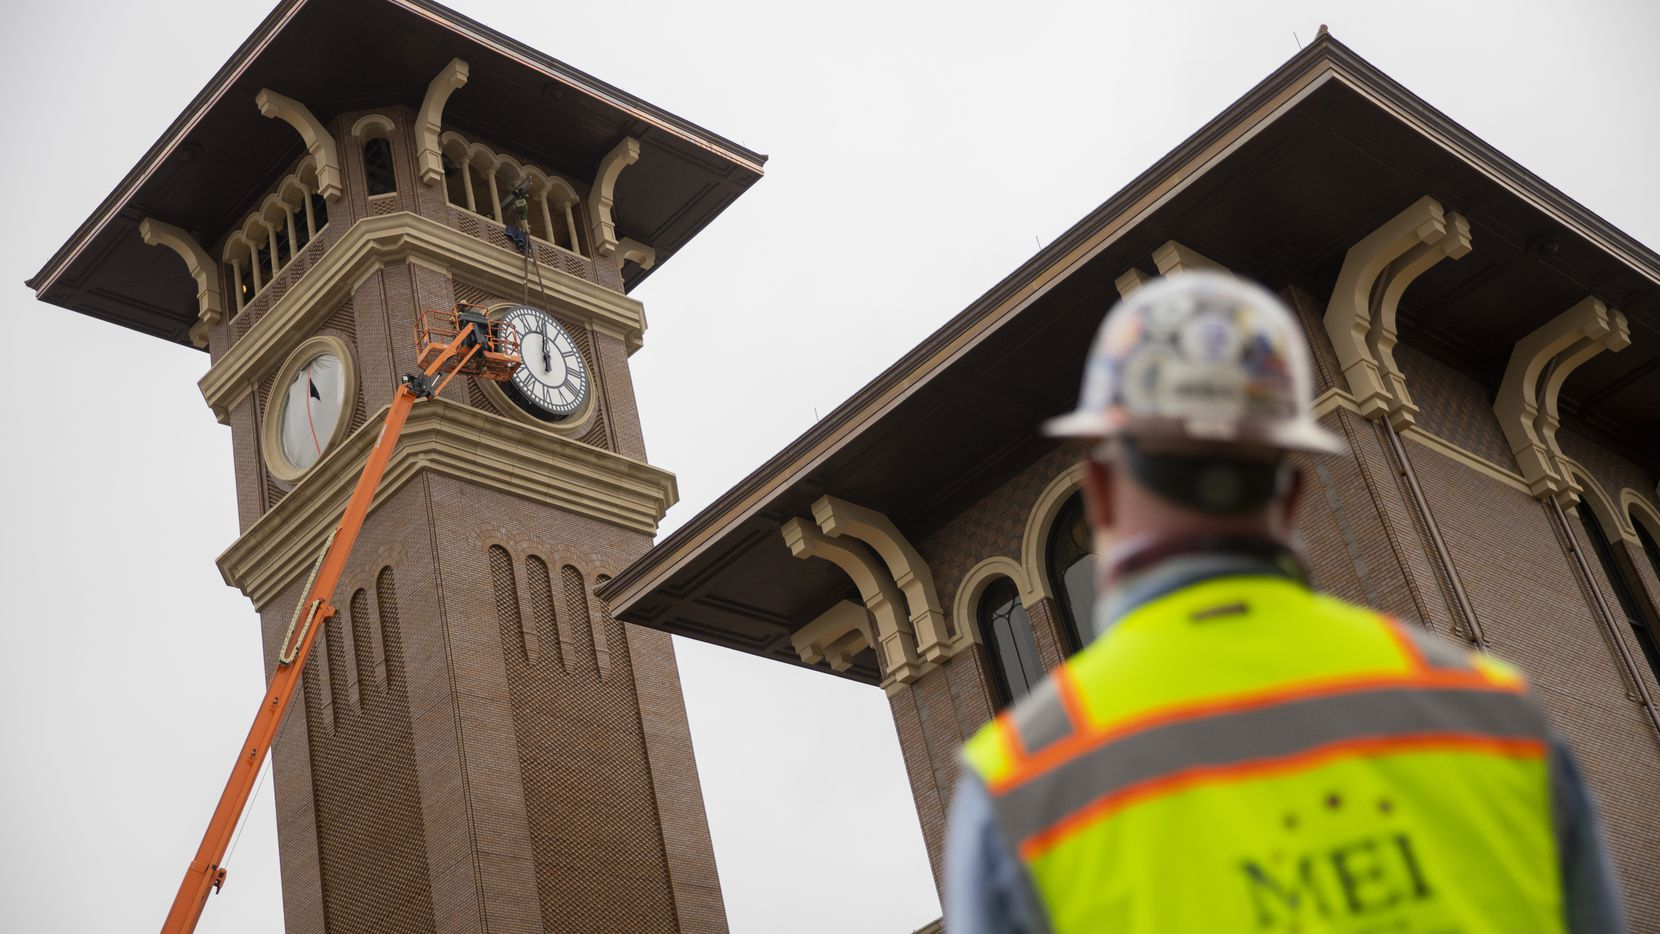 Clint Hoffman, operations manager with MEI Rigging & Crating, watches as his crew works to install a 12-foot glass clock on the Grapevine Main Station's Observation Tower on Sept. 3, 2020 in Grapevine. The clocks designed by Electric Time Company were designed to be compatible with the Texas-Italianate style of the station.